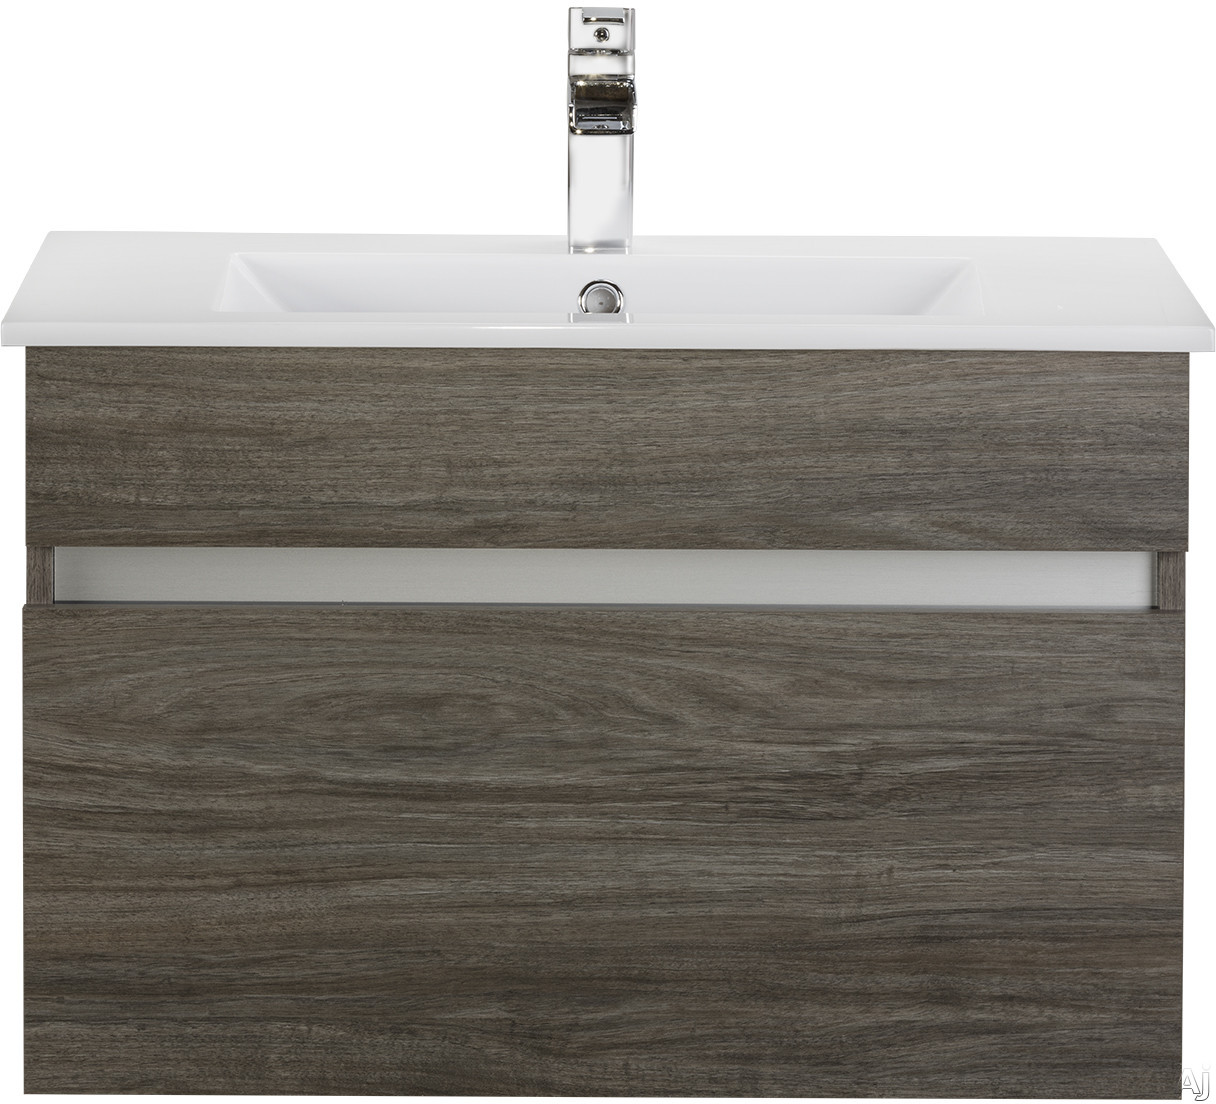 Cutler Kitchen & Bath Ivory FVCHSW30 30 Inch Wall Mount Bathroom Vanity with 1 Soft Close Drawer, Countertop and Sink and European Soft-Close Hardware: Southwester